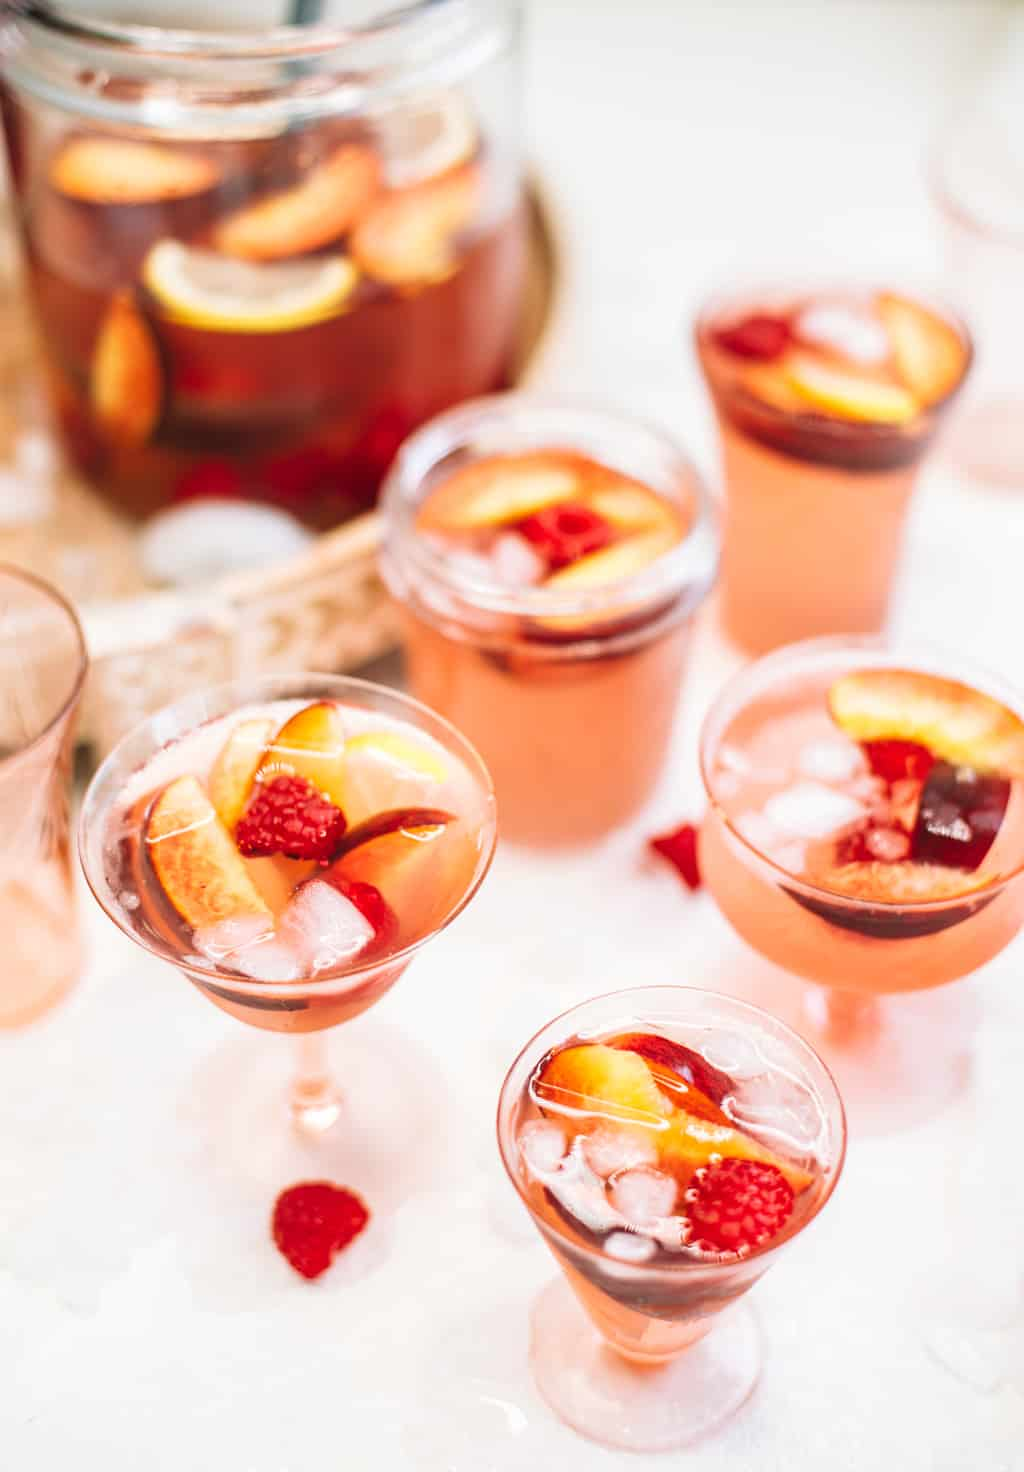 Rosè sangria with peaches and raspberries served in pink wine glasses.